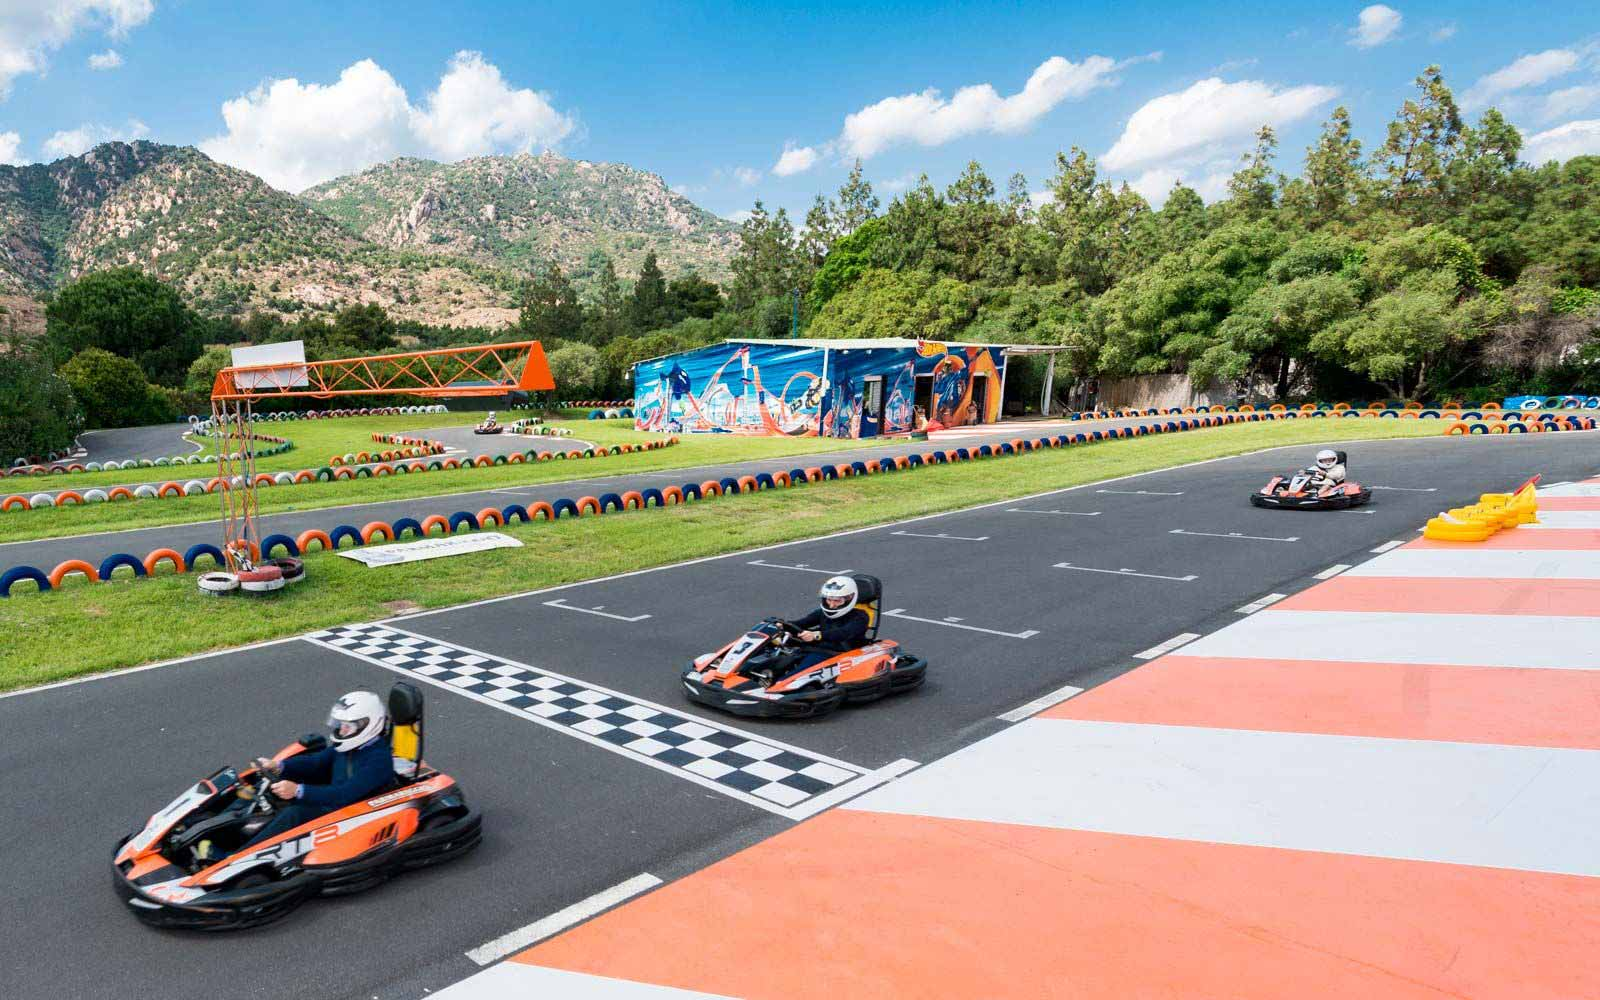 Go-kart at the Forte Village Resort